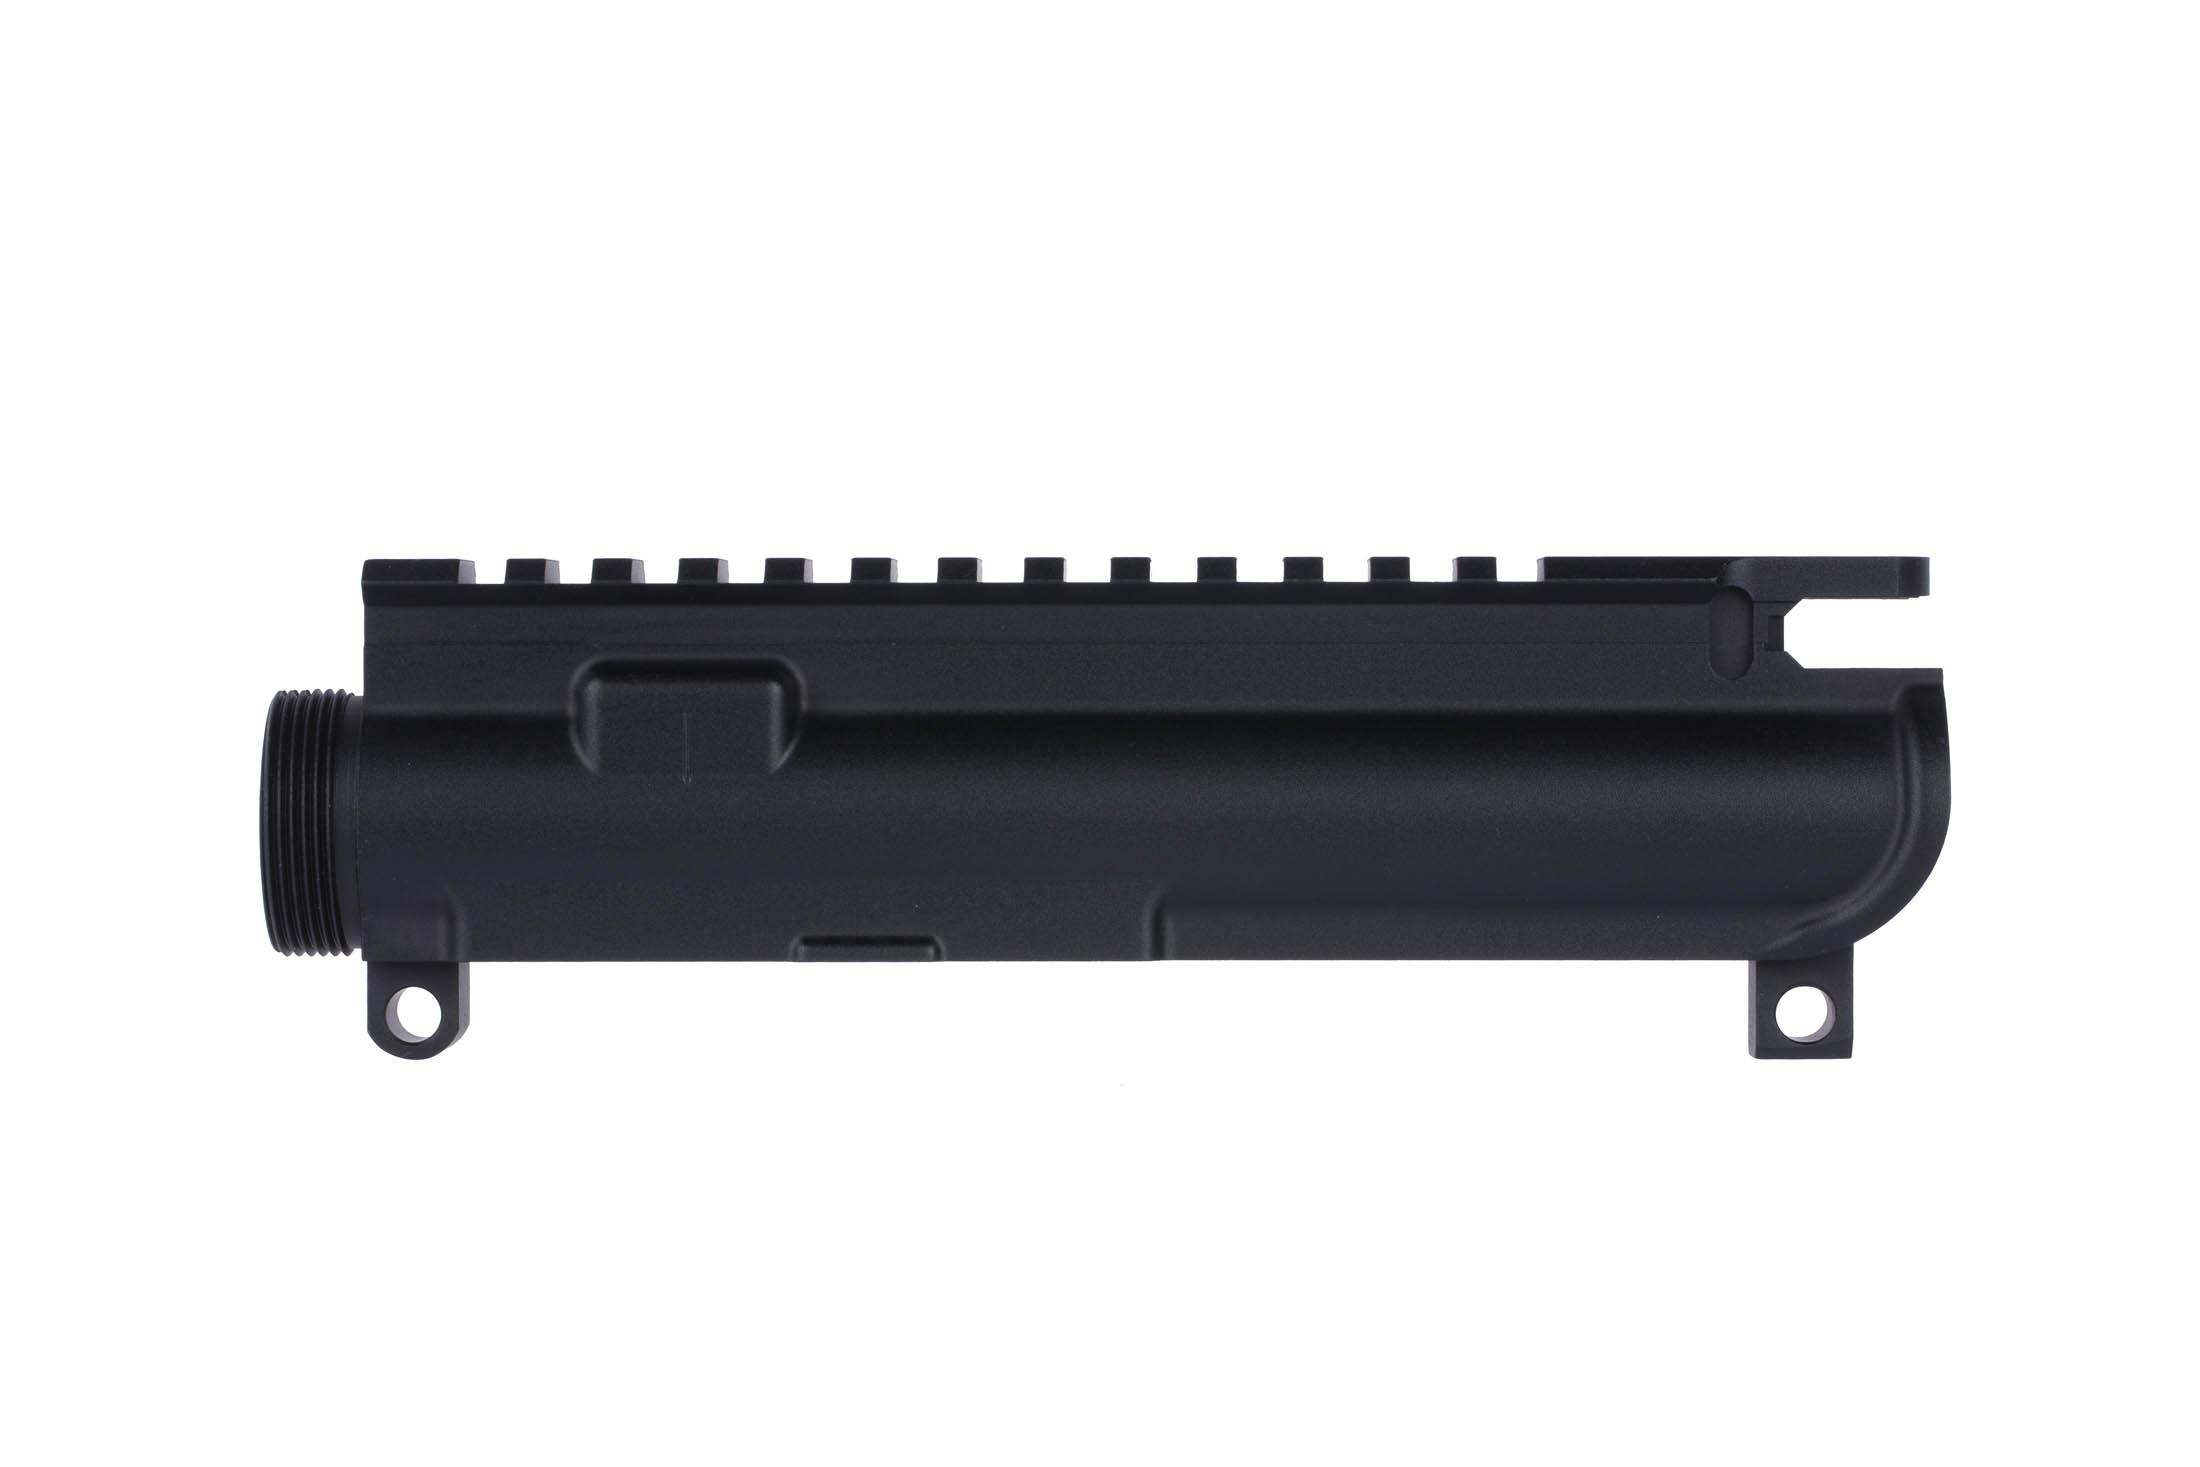 Expo Arms AR-15 Forged Stripped Upper Receiver is crafted from 7075-T6 aluminum